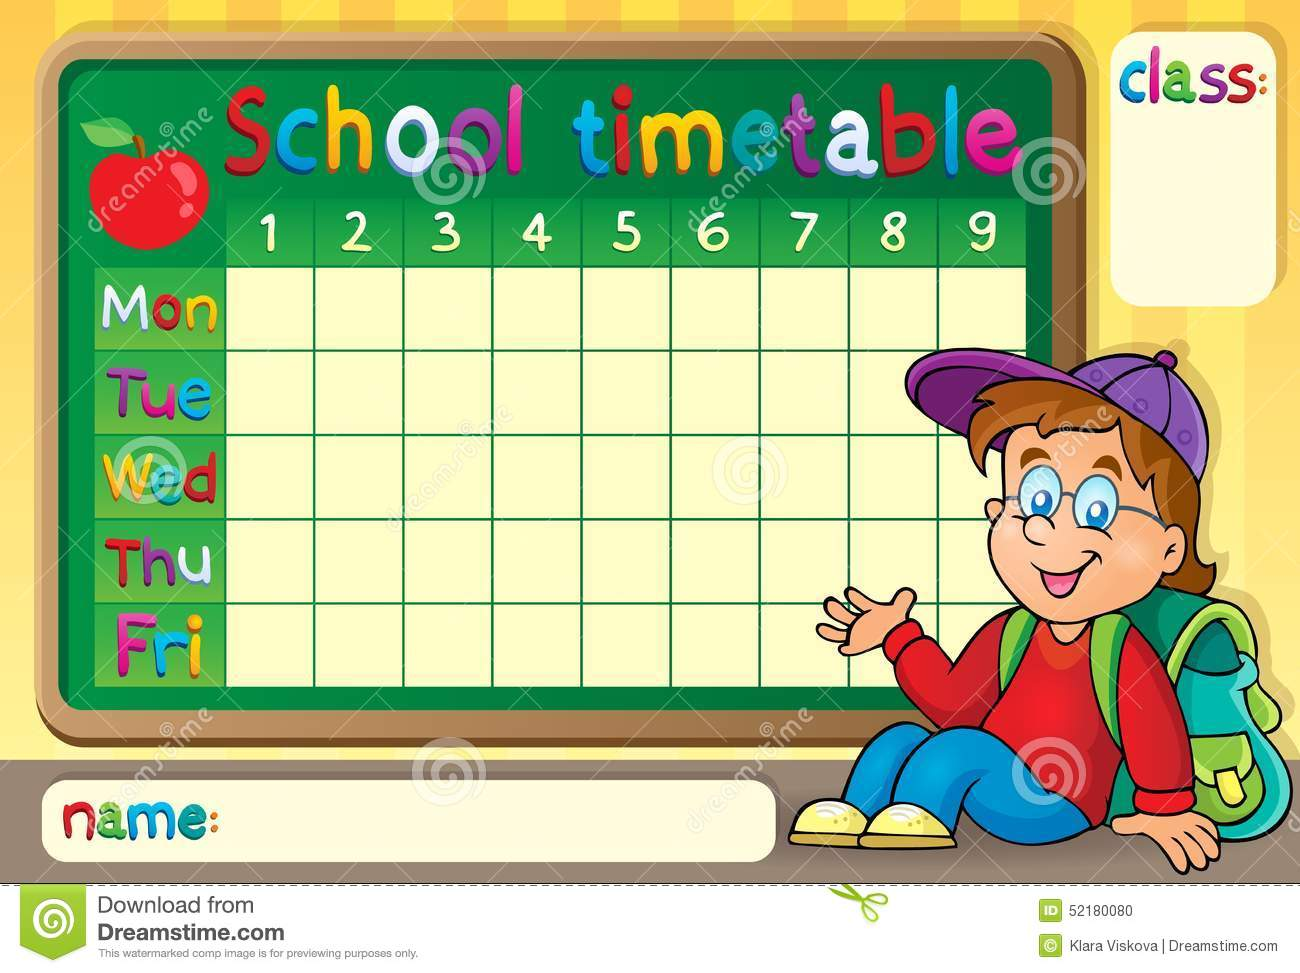 School Timetable Design Photos Images Pictures 462 Images – School Time Table Designs